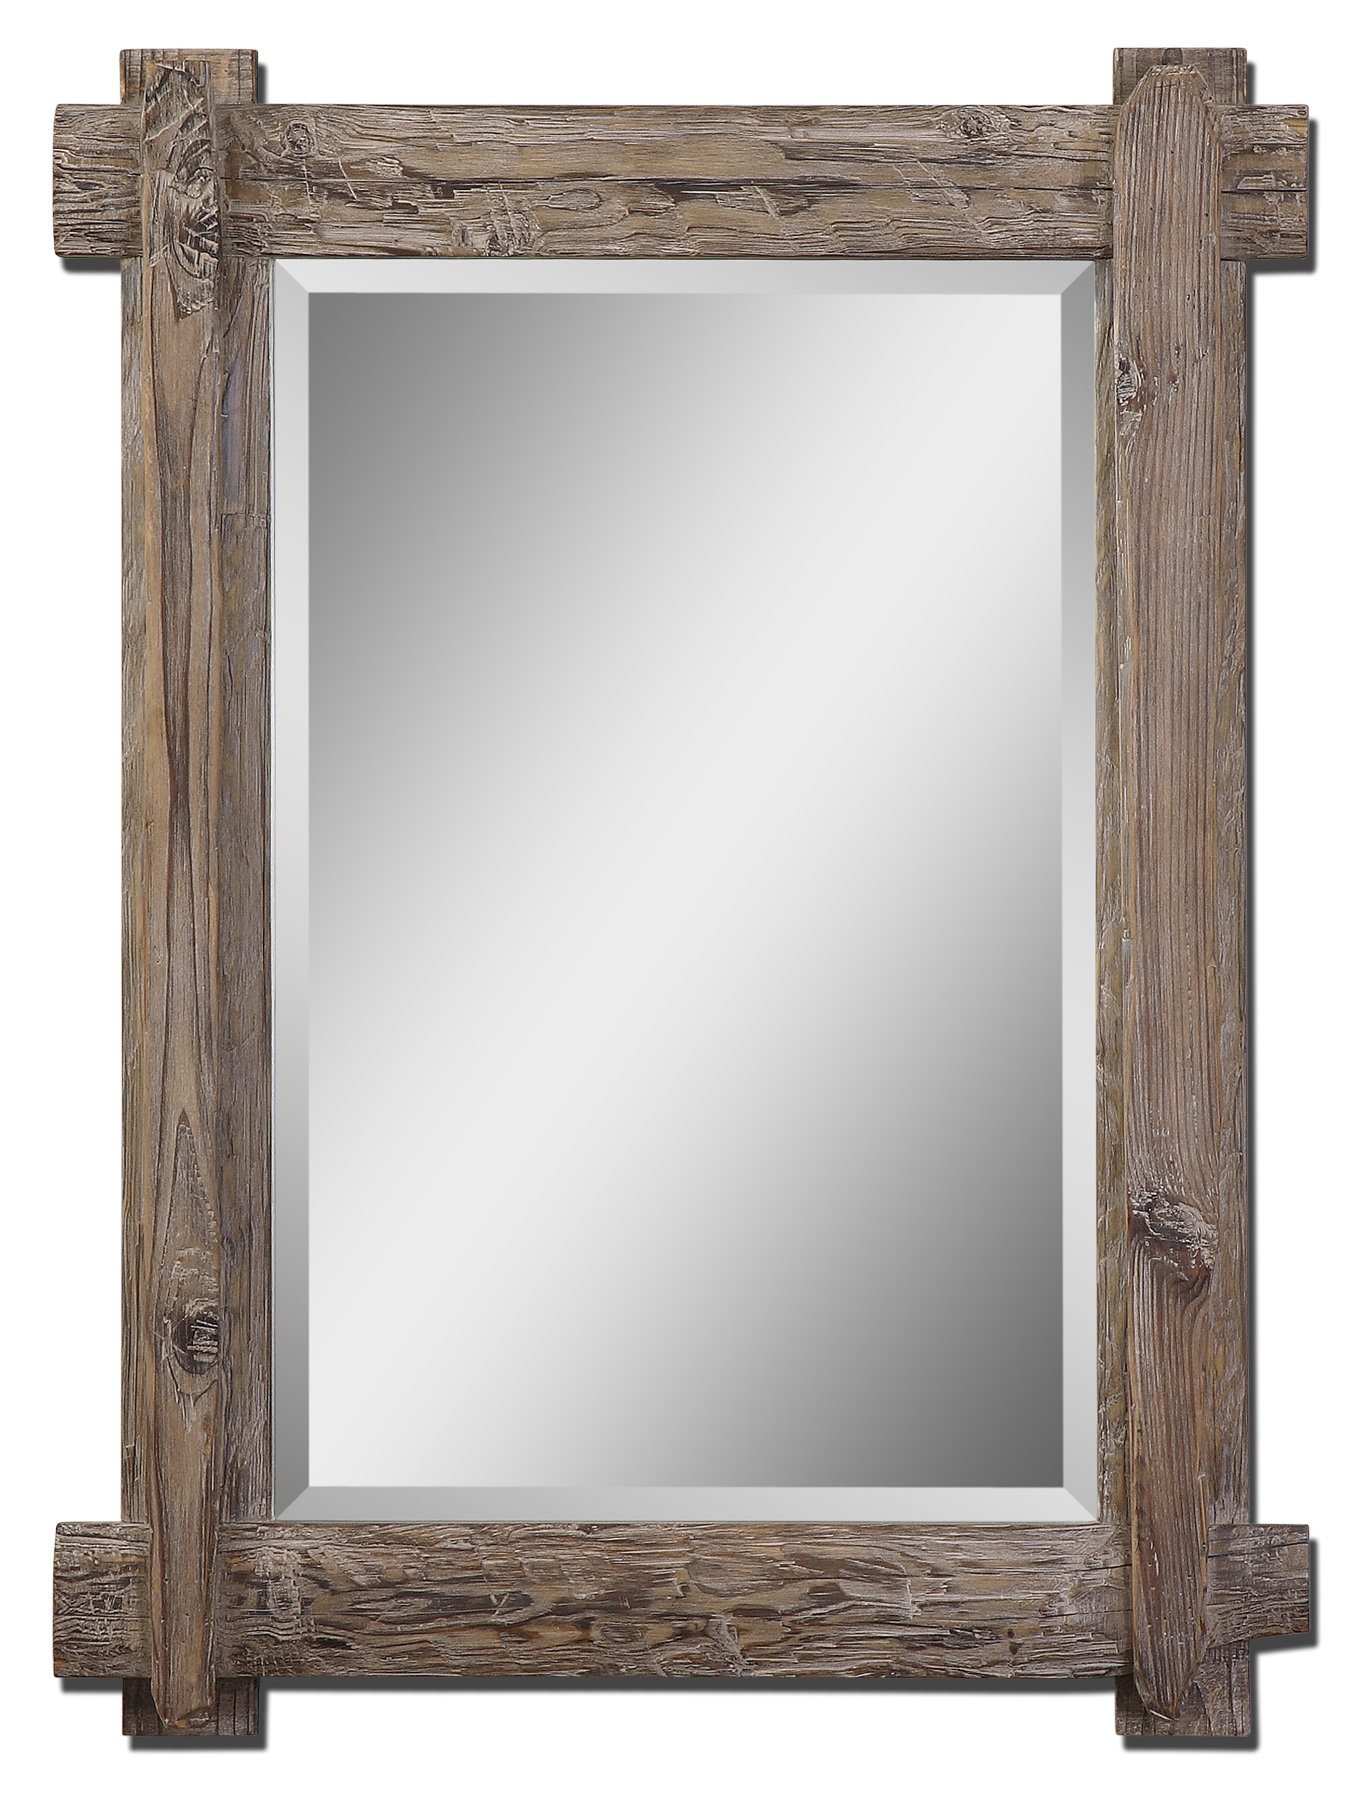 Wooden Traditional Beveled Accent Mirror Throughout Tifton Traditional Beveled Accent Mirrors (Image 19 of 20)